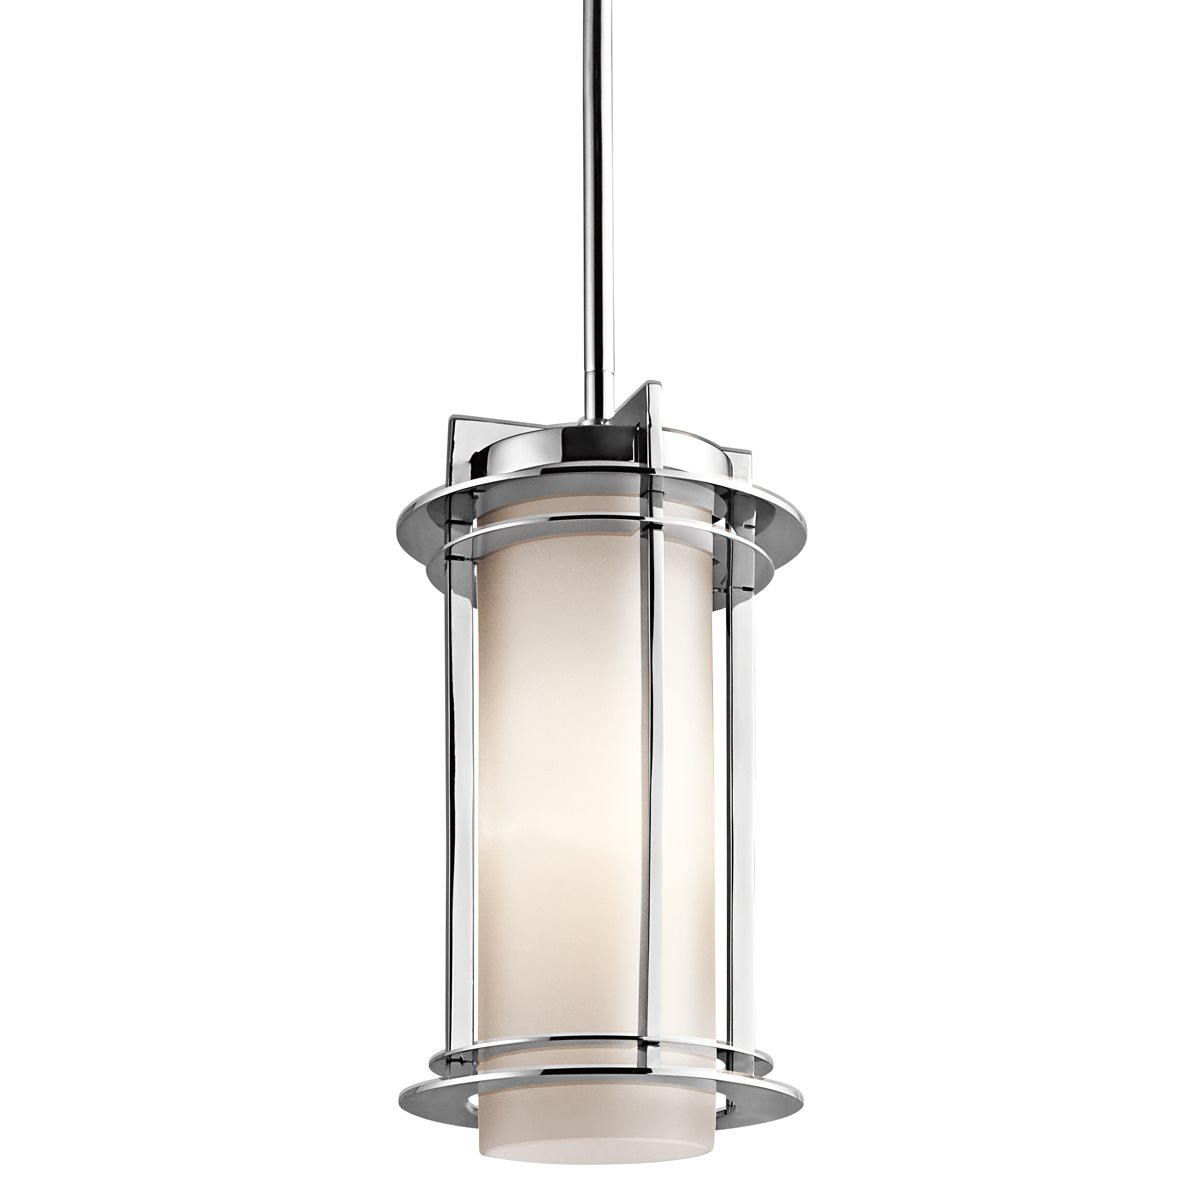 Kichler lighting 49347pss316 pacific edge modern Outdoor pendant lighting